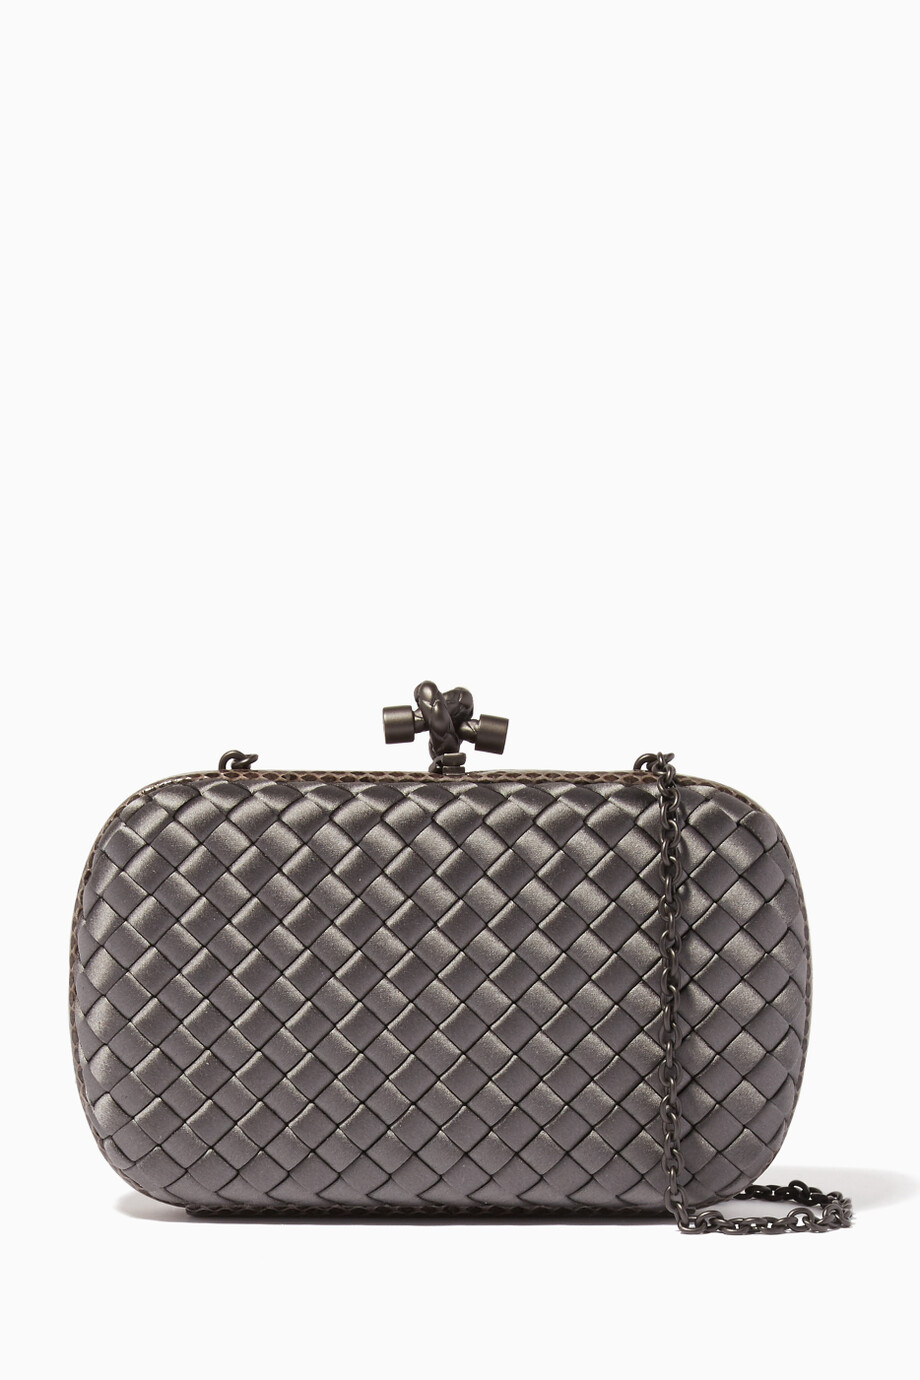 96b57fee5bad Shop Bottega Veneta Grey Light-Grey Ayers Satin Chain Knot Clutch ...